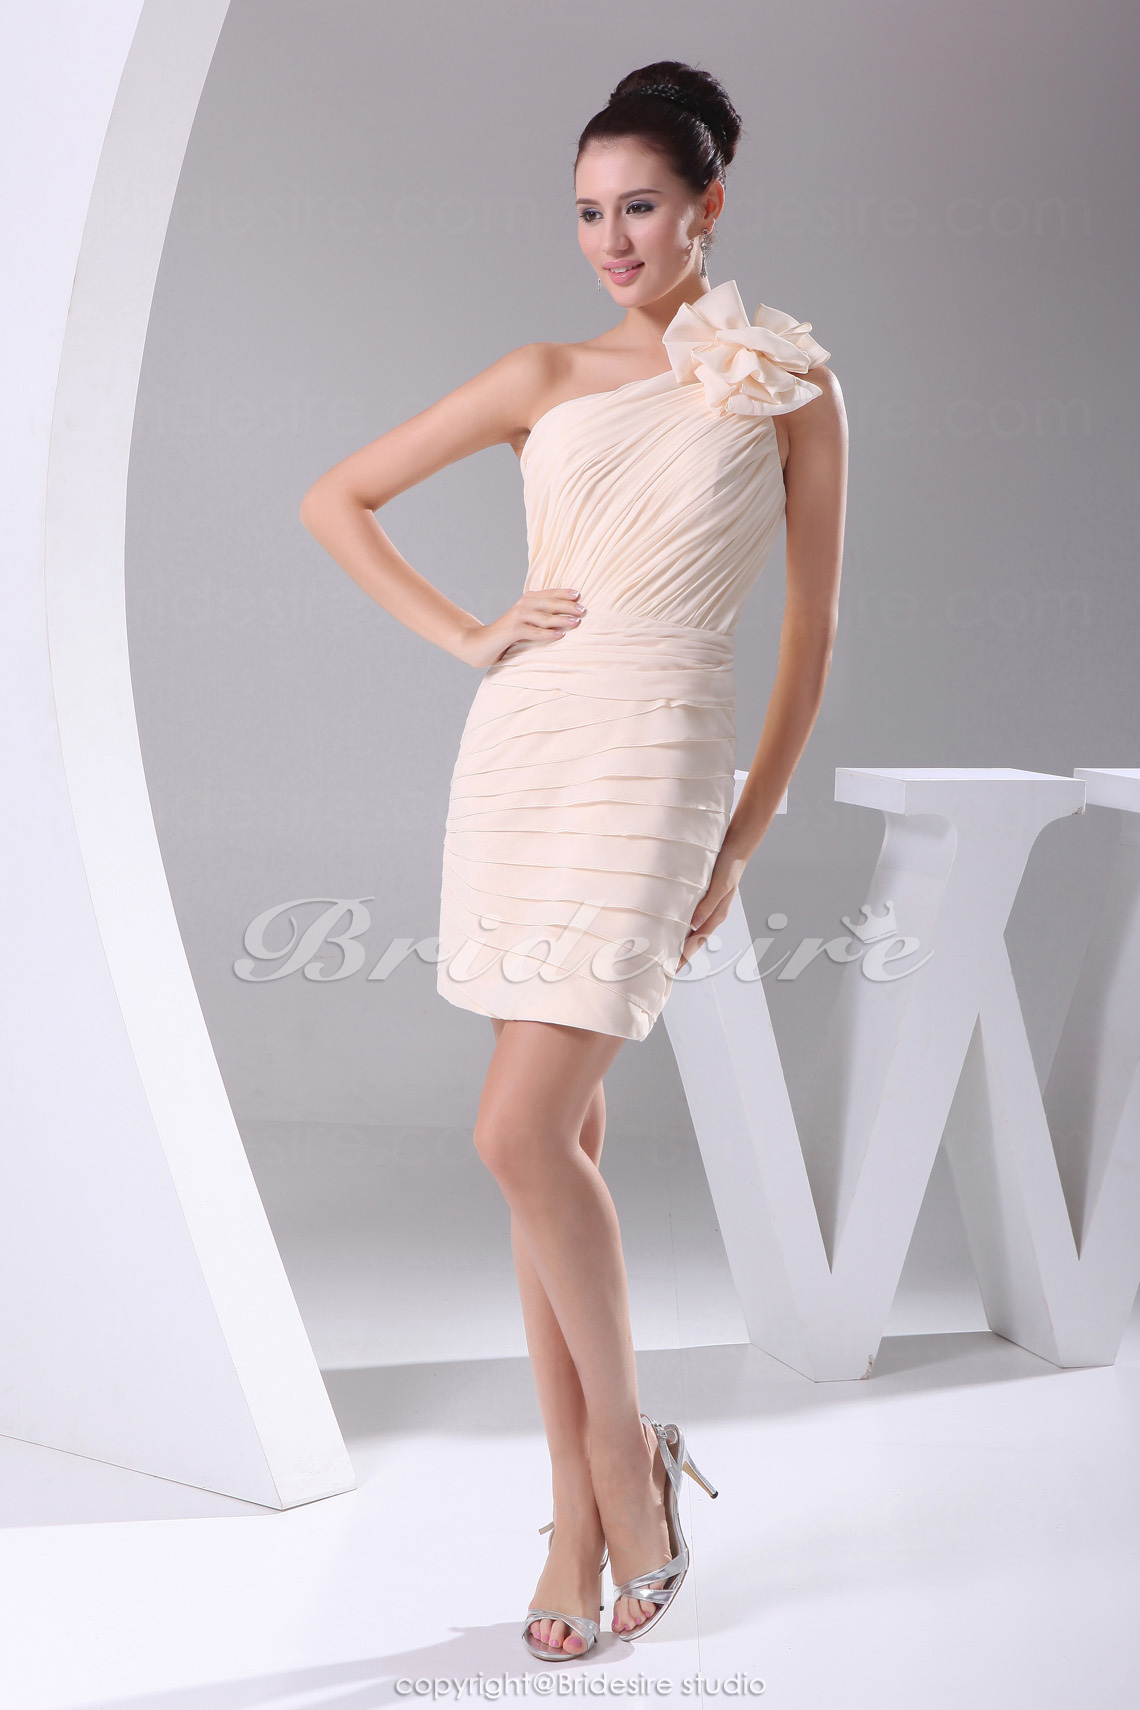 Sheath/Column One Shoulder Short/Mini Sleeveless Chiffon Bridesmaid Dress